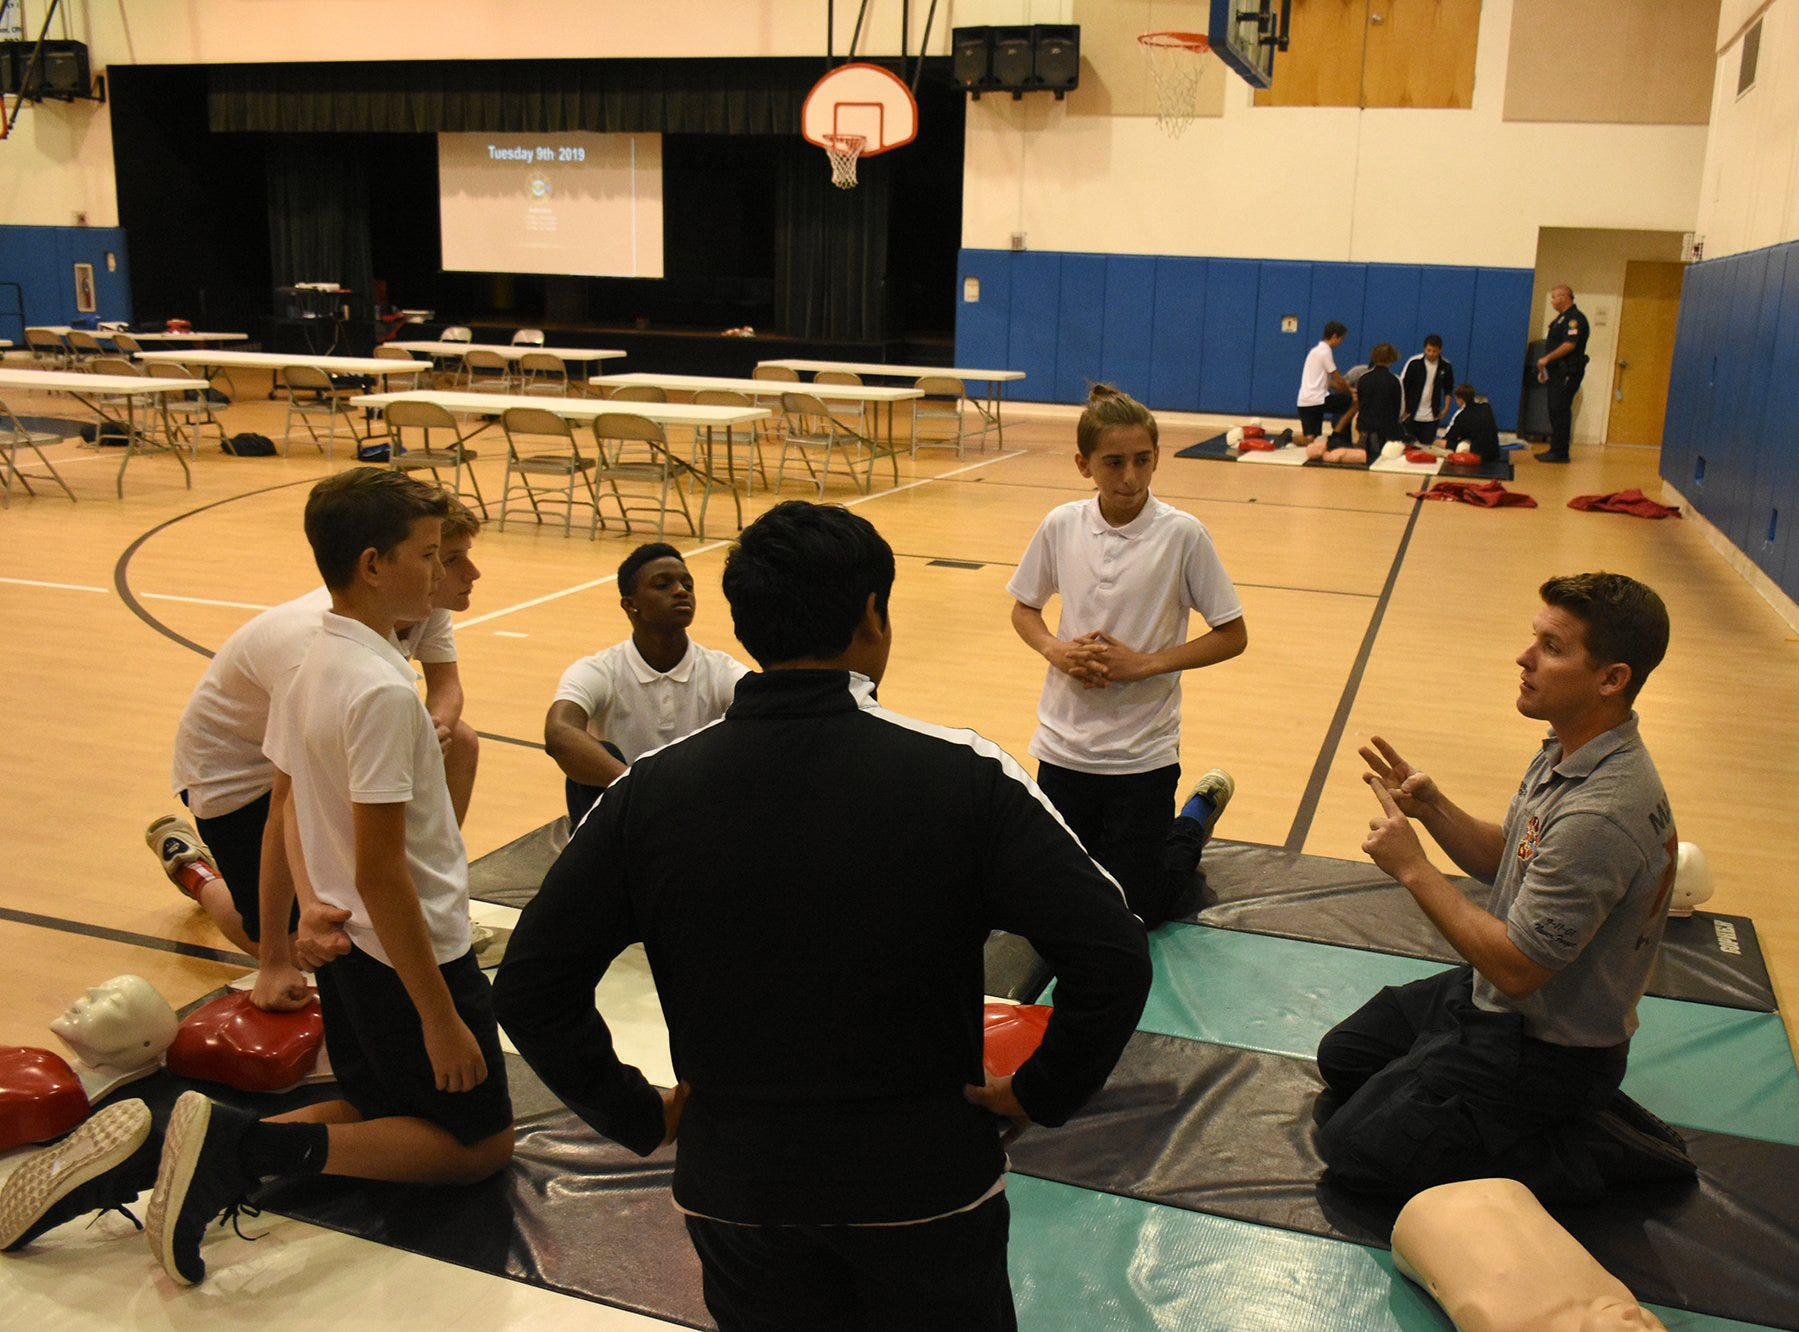 Firefighter/paramedic Chris Bowden works with students. The Marco Island Fire-Rescue Dept. trained all eighth graders at MICMS in CPR technique this week.